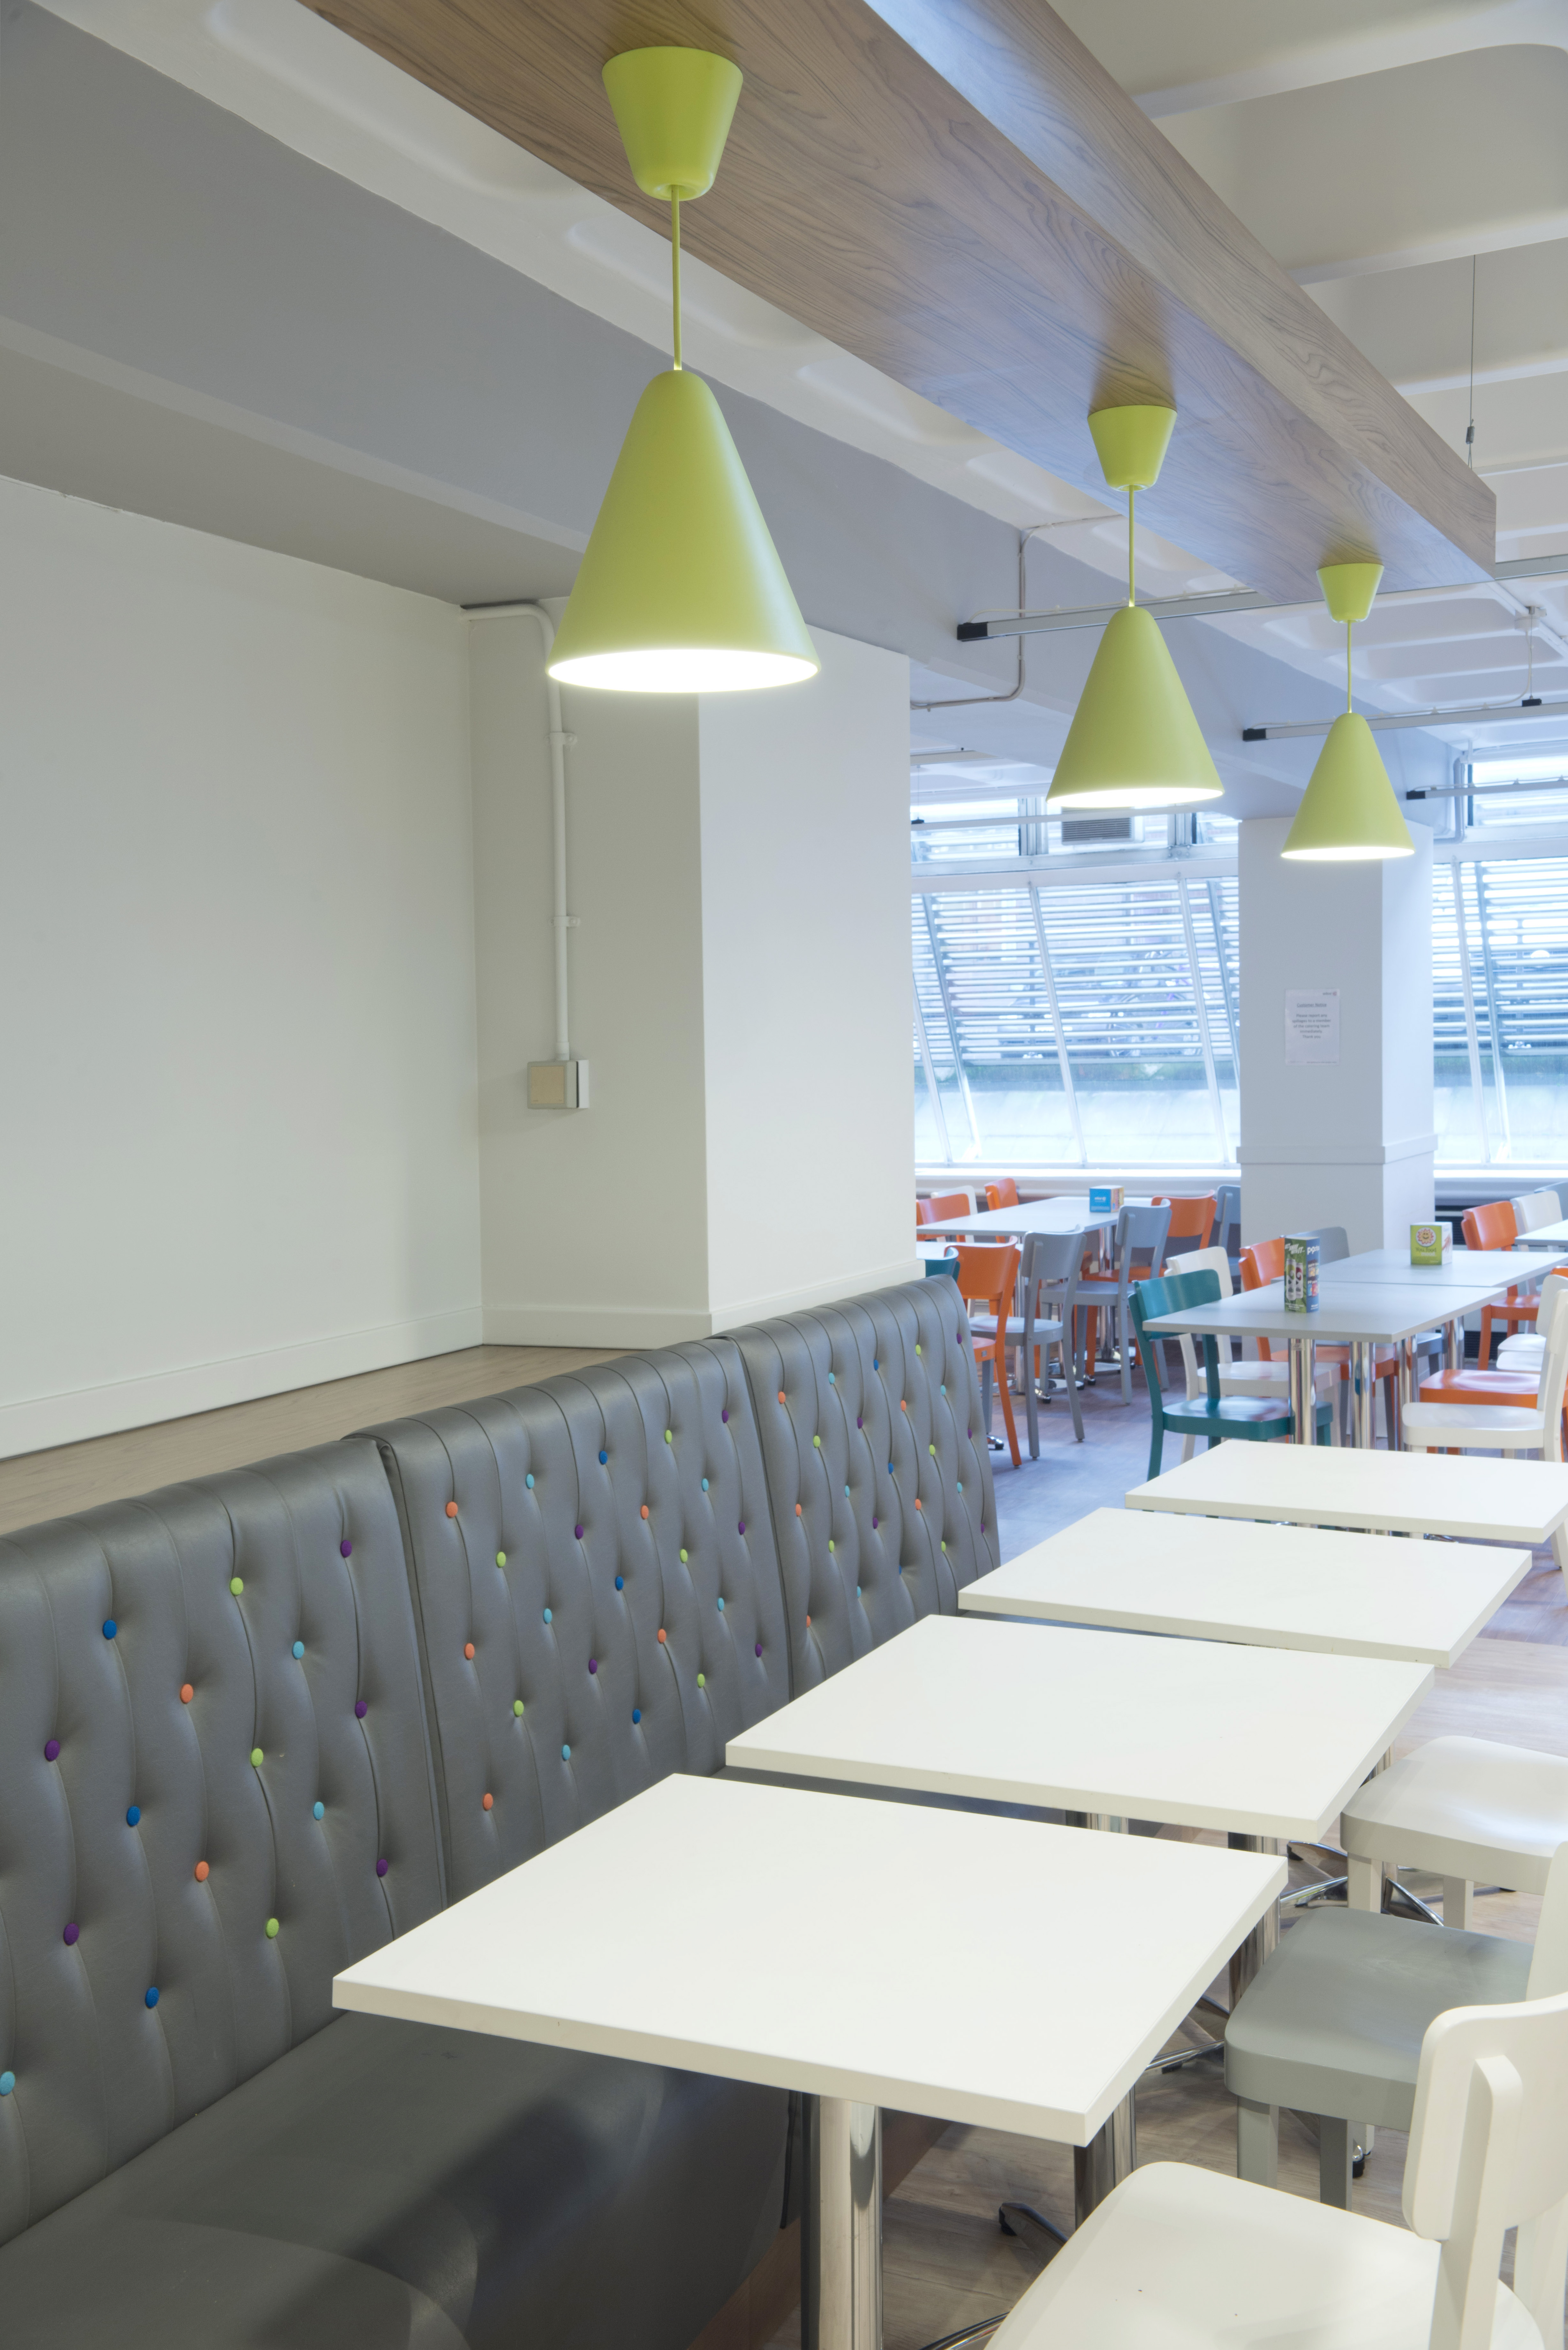 London south bank university catering design group for London design group